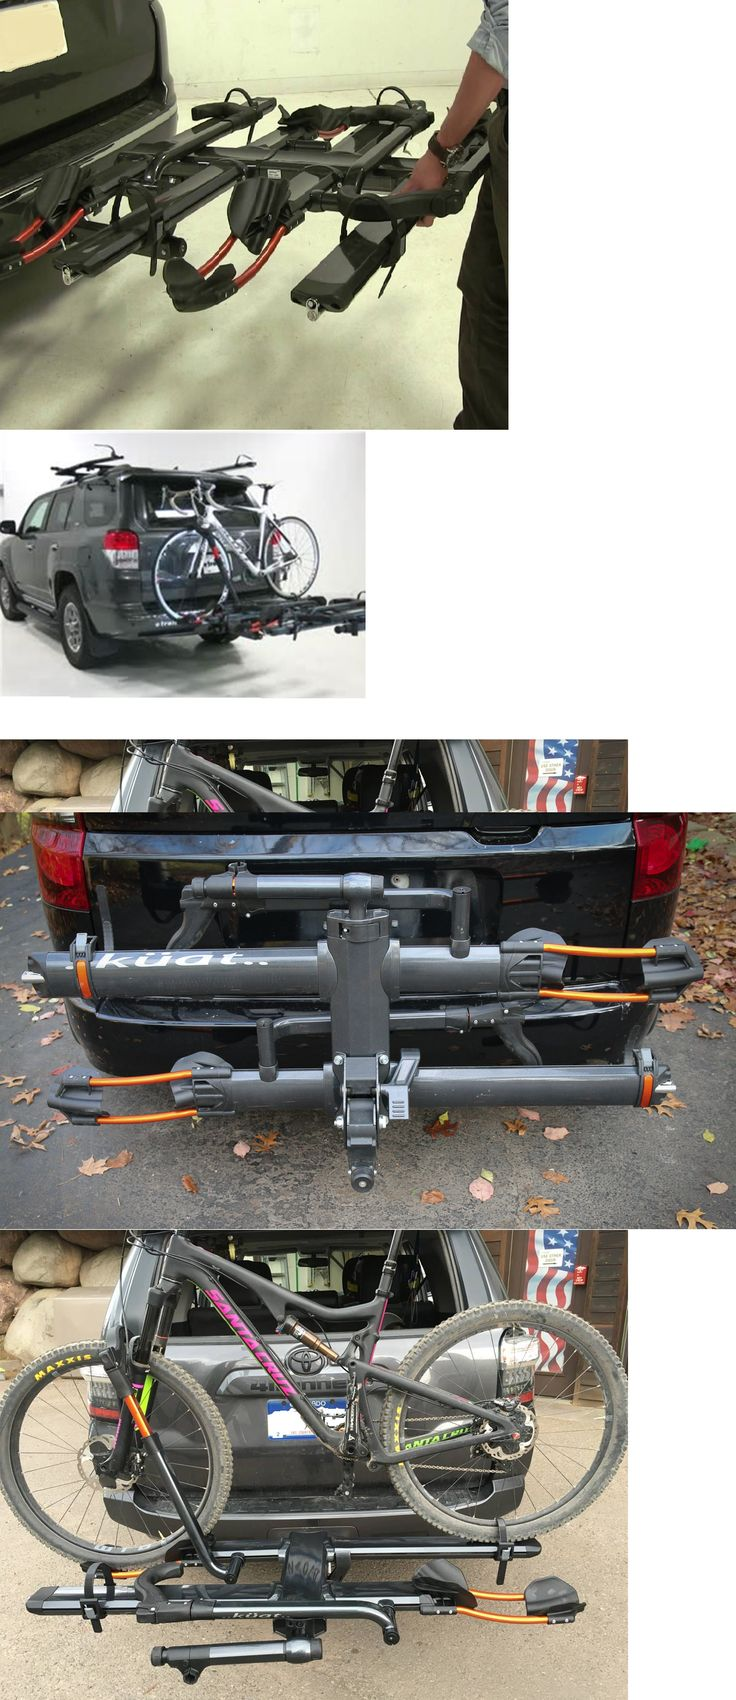 Carrier and Pannier Racks 177836: New! Kuat Nv 2.0 Add-On Hitch Rack Gun Metal Gray And Orange Bike Rack For Nv 2.0 -> BUY IT NOW ONLY: $385.87 on eBay!